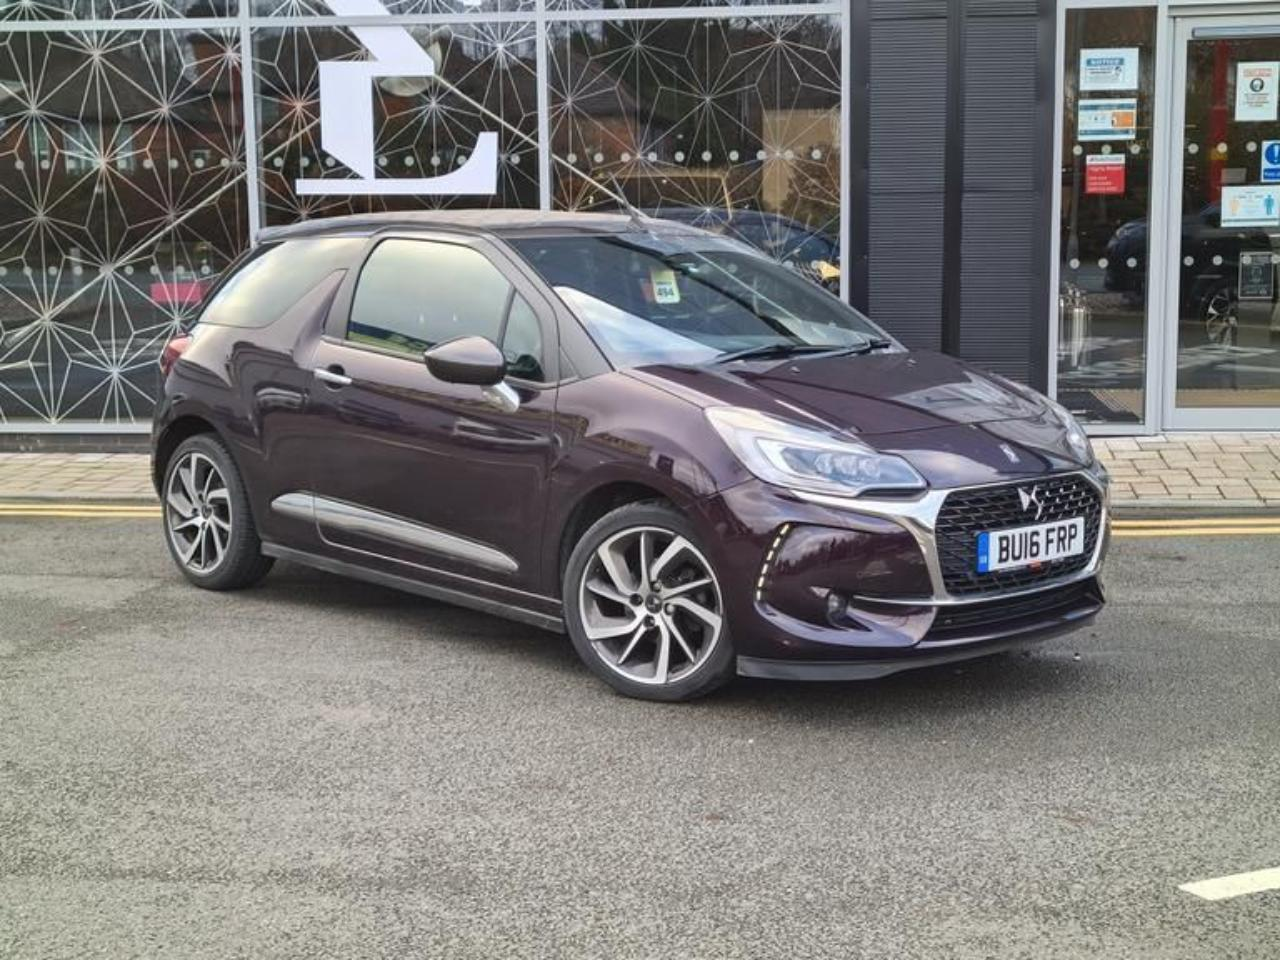 Ds DS3 Cabrio DS 3 CABRIOLET 1.2 PureTech Prestige Cabriolet (s/s) 2dr